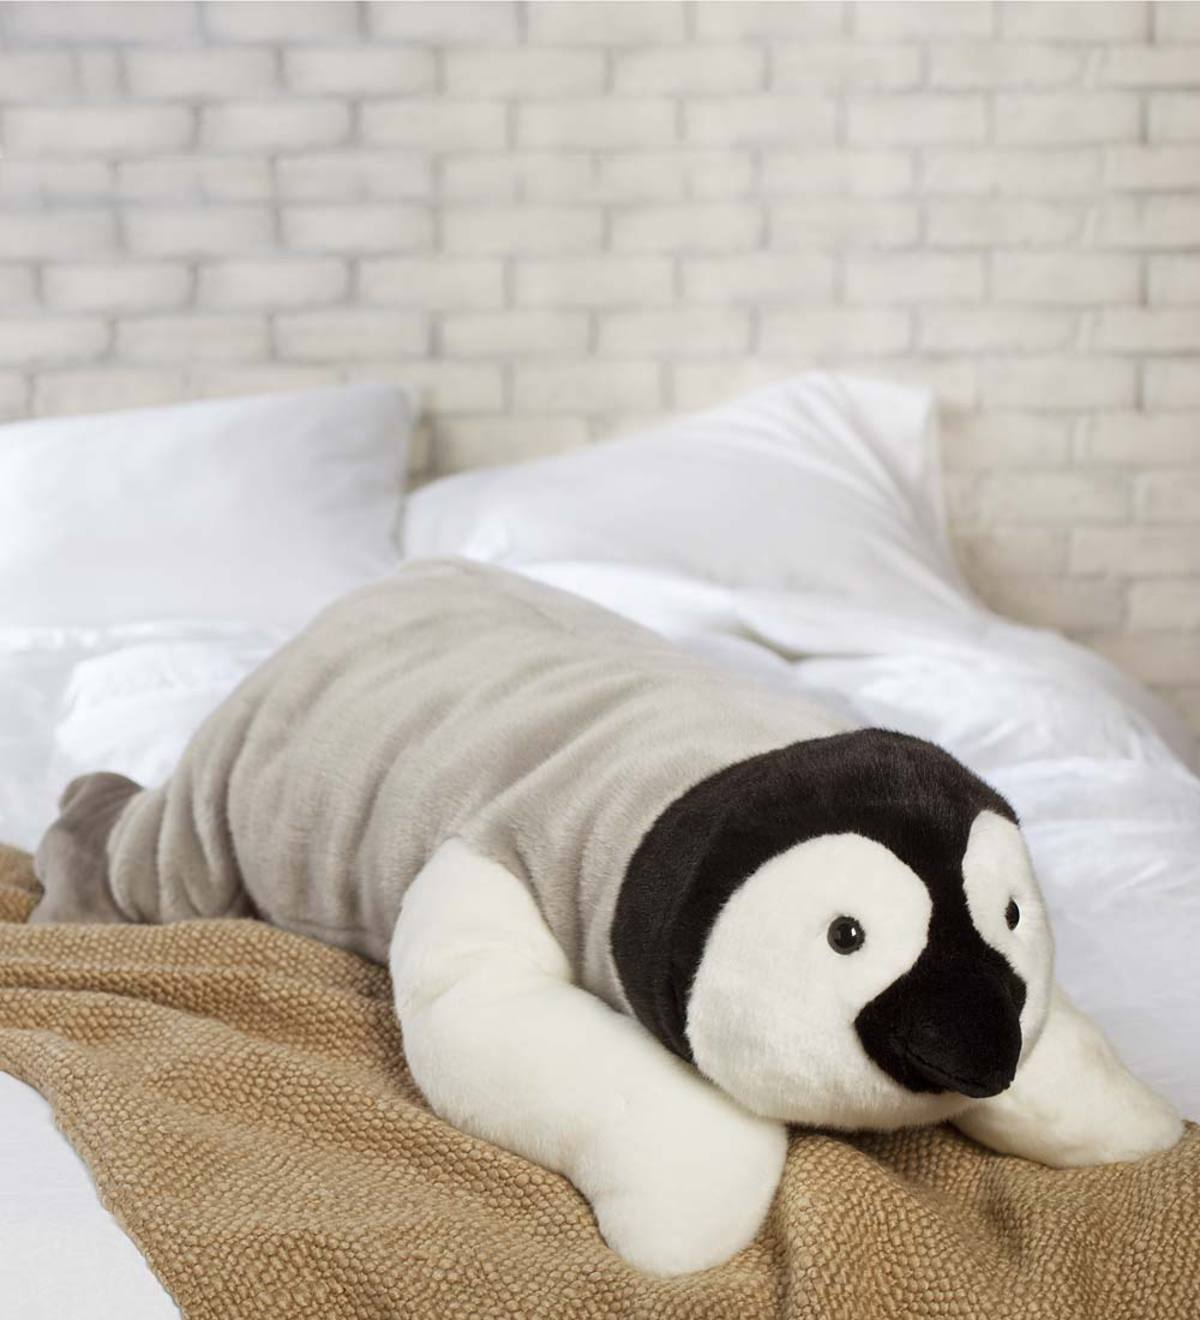 Penguin Body Pillow Wind And Weather